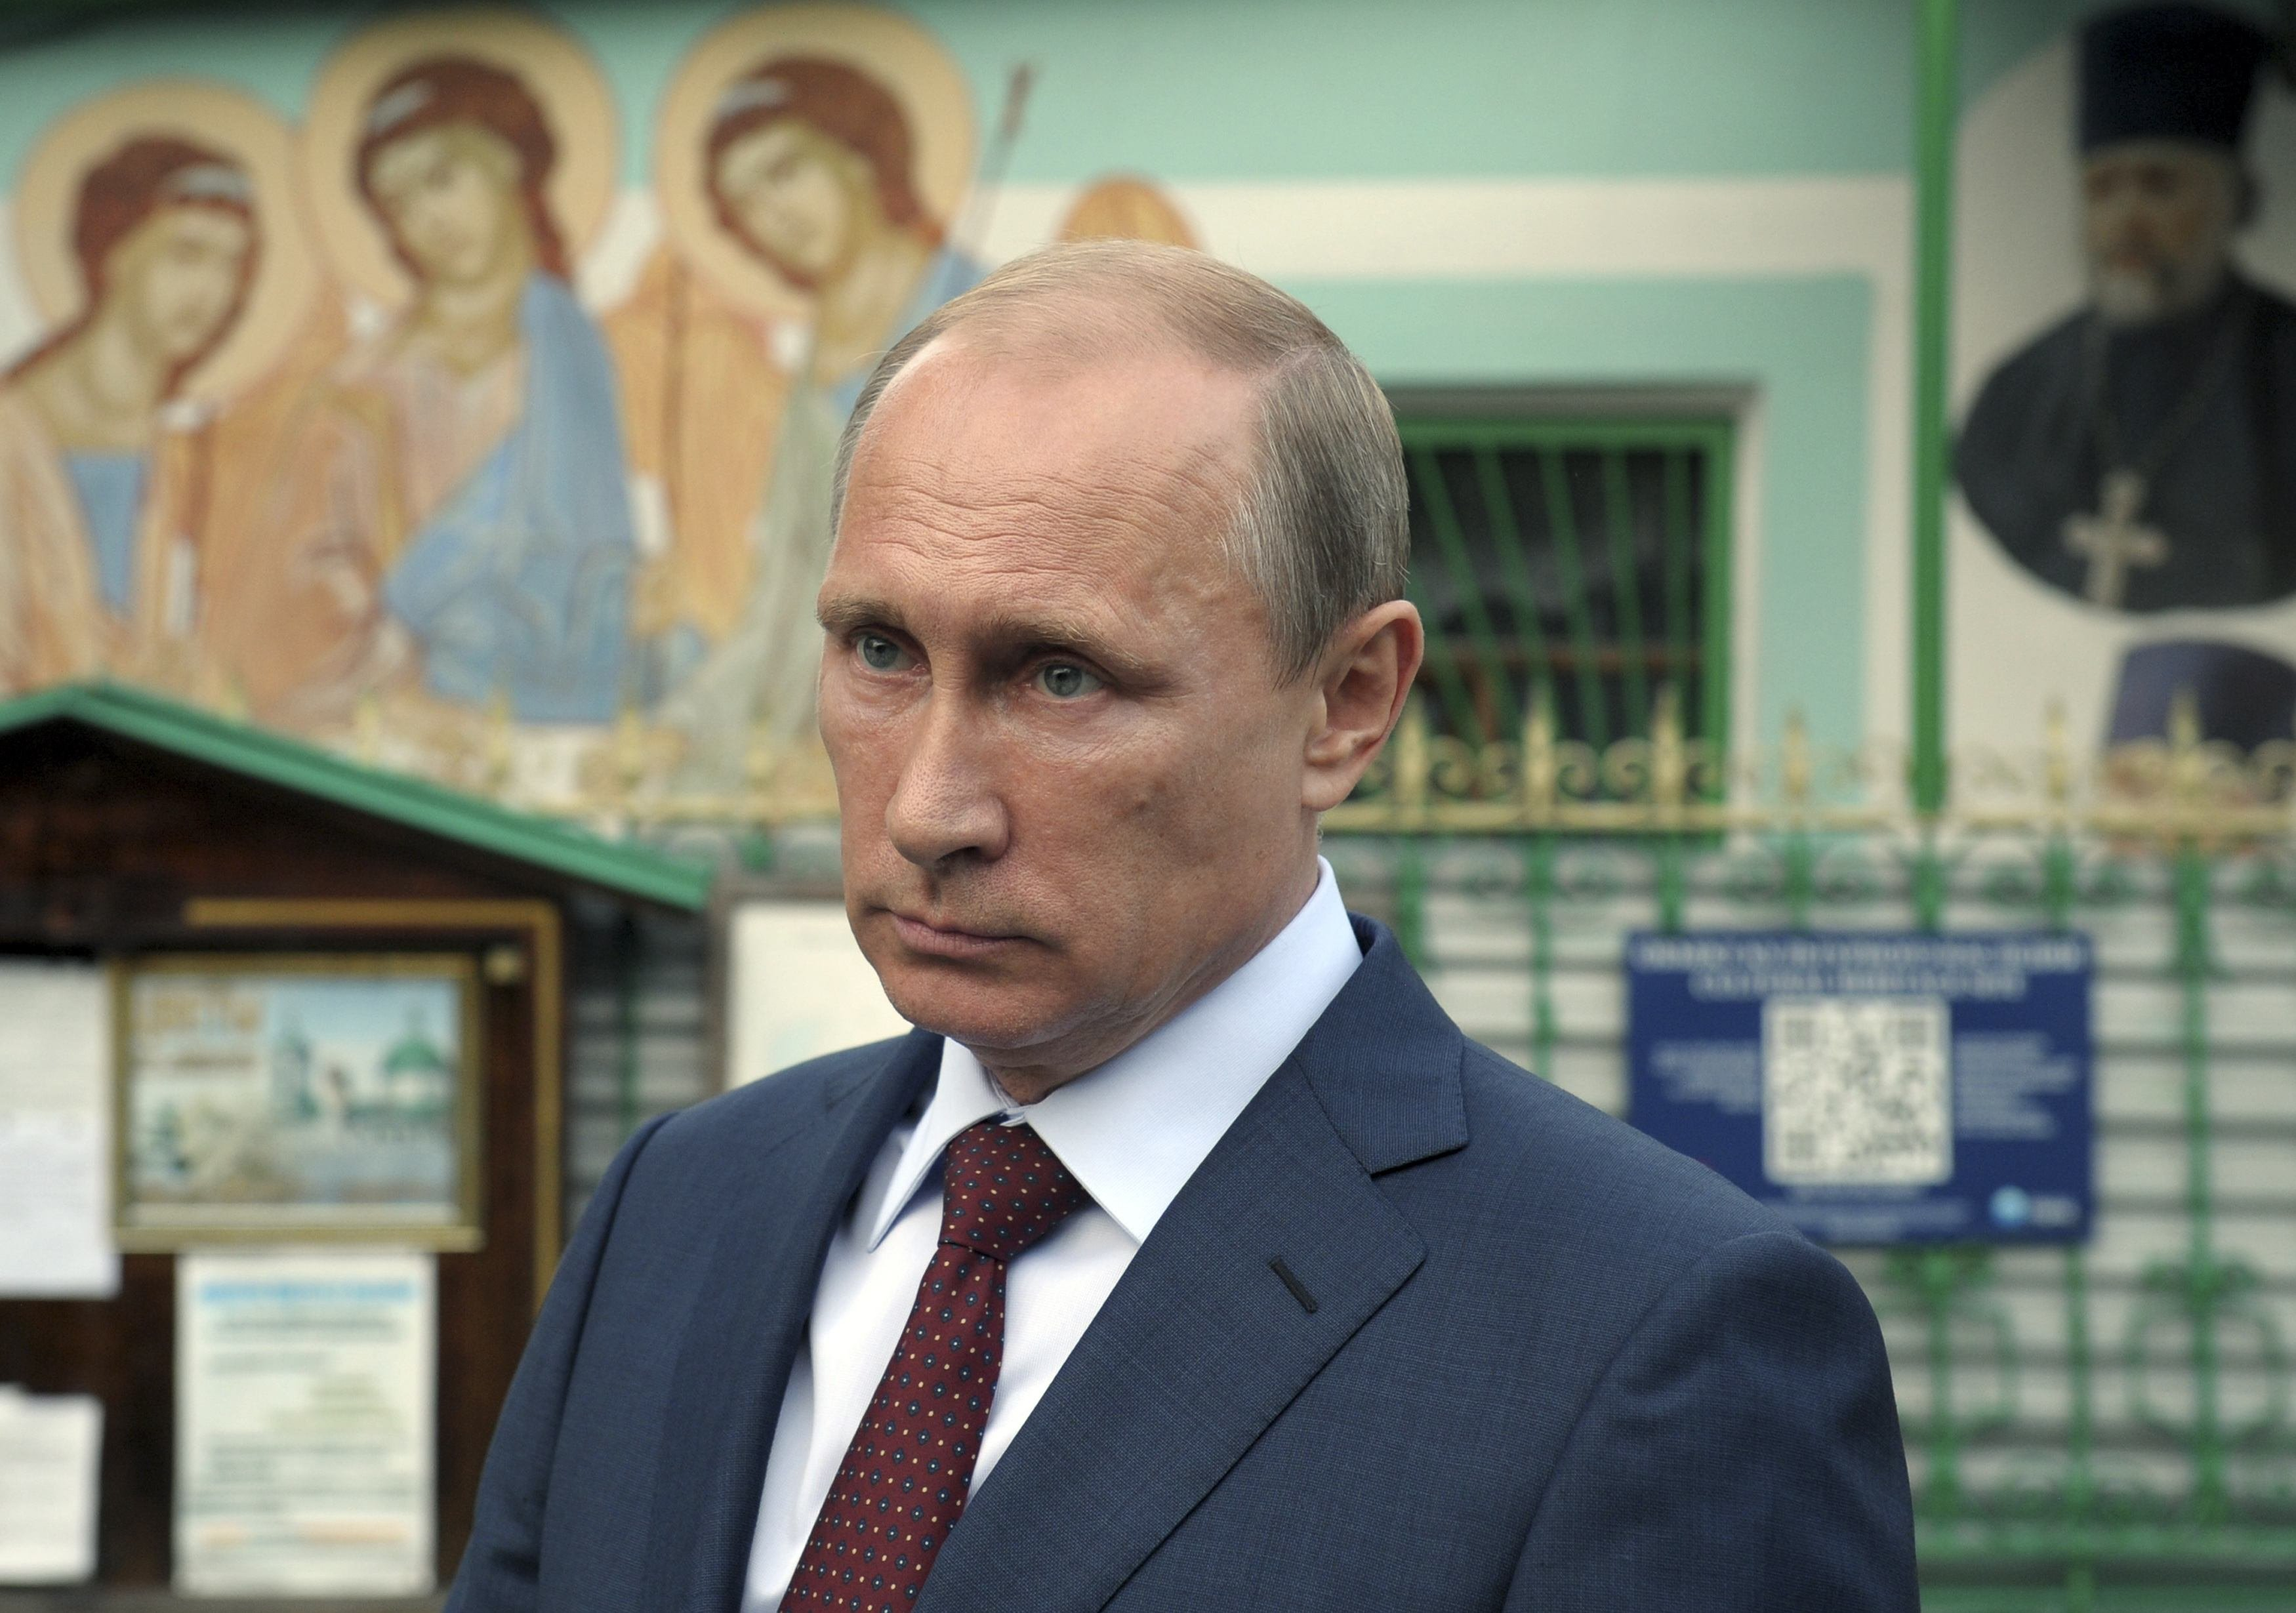 Russian President Vladimir Putin leaves the Life-giving Trinity church in Moscow, Sept. 10, 2014.